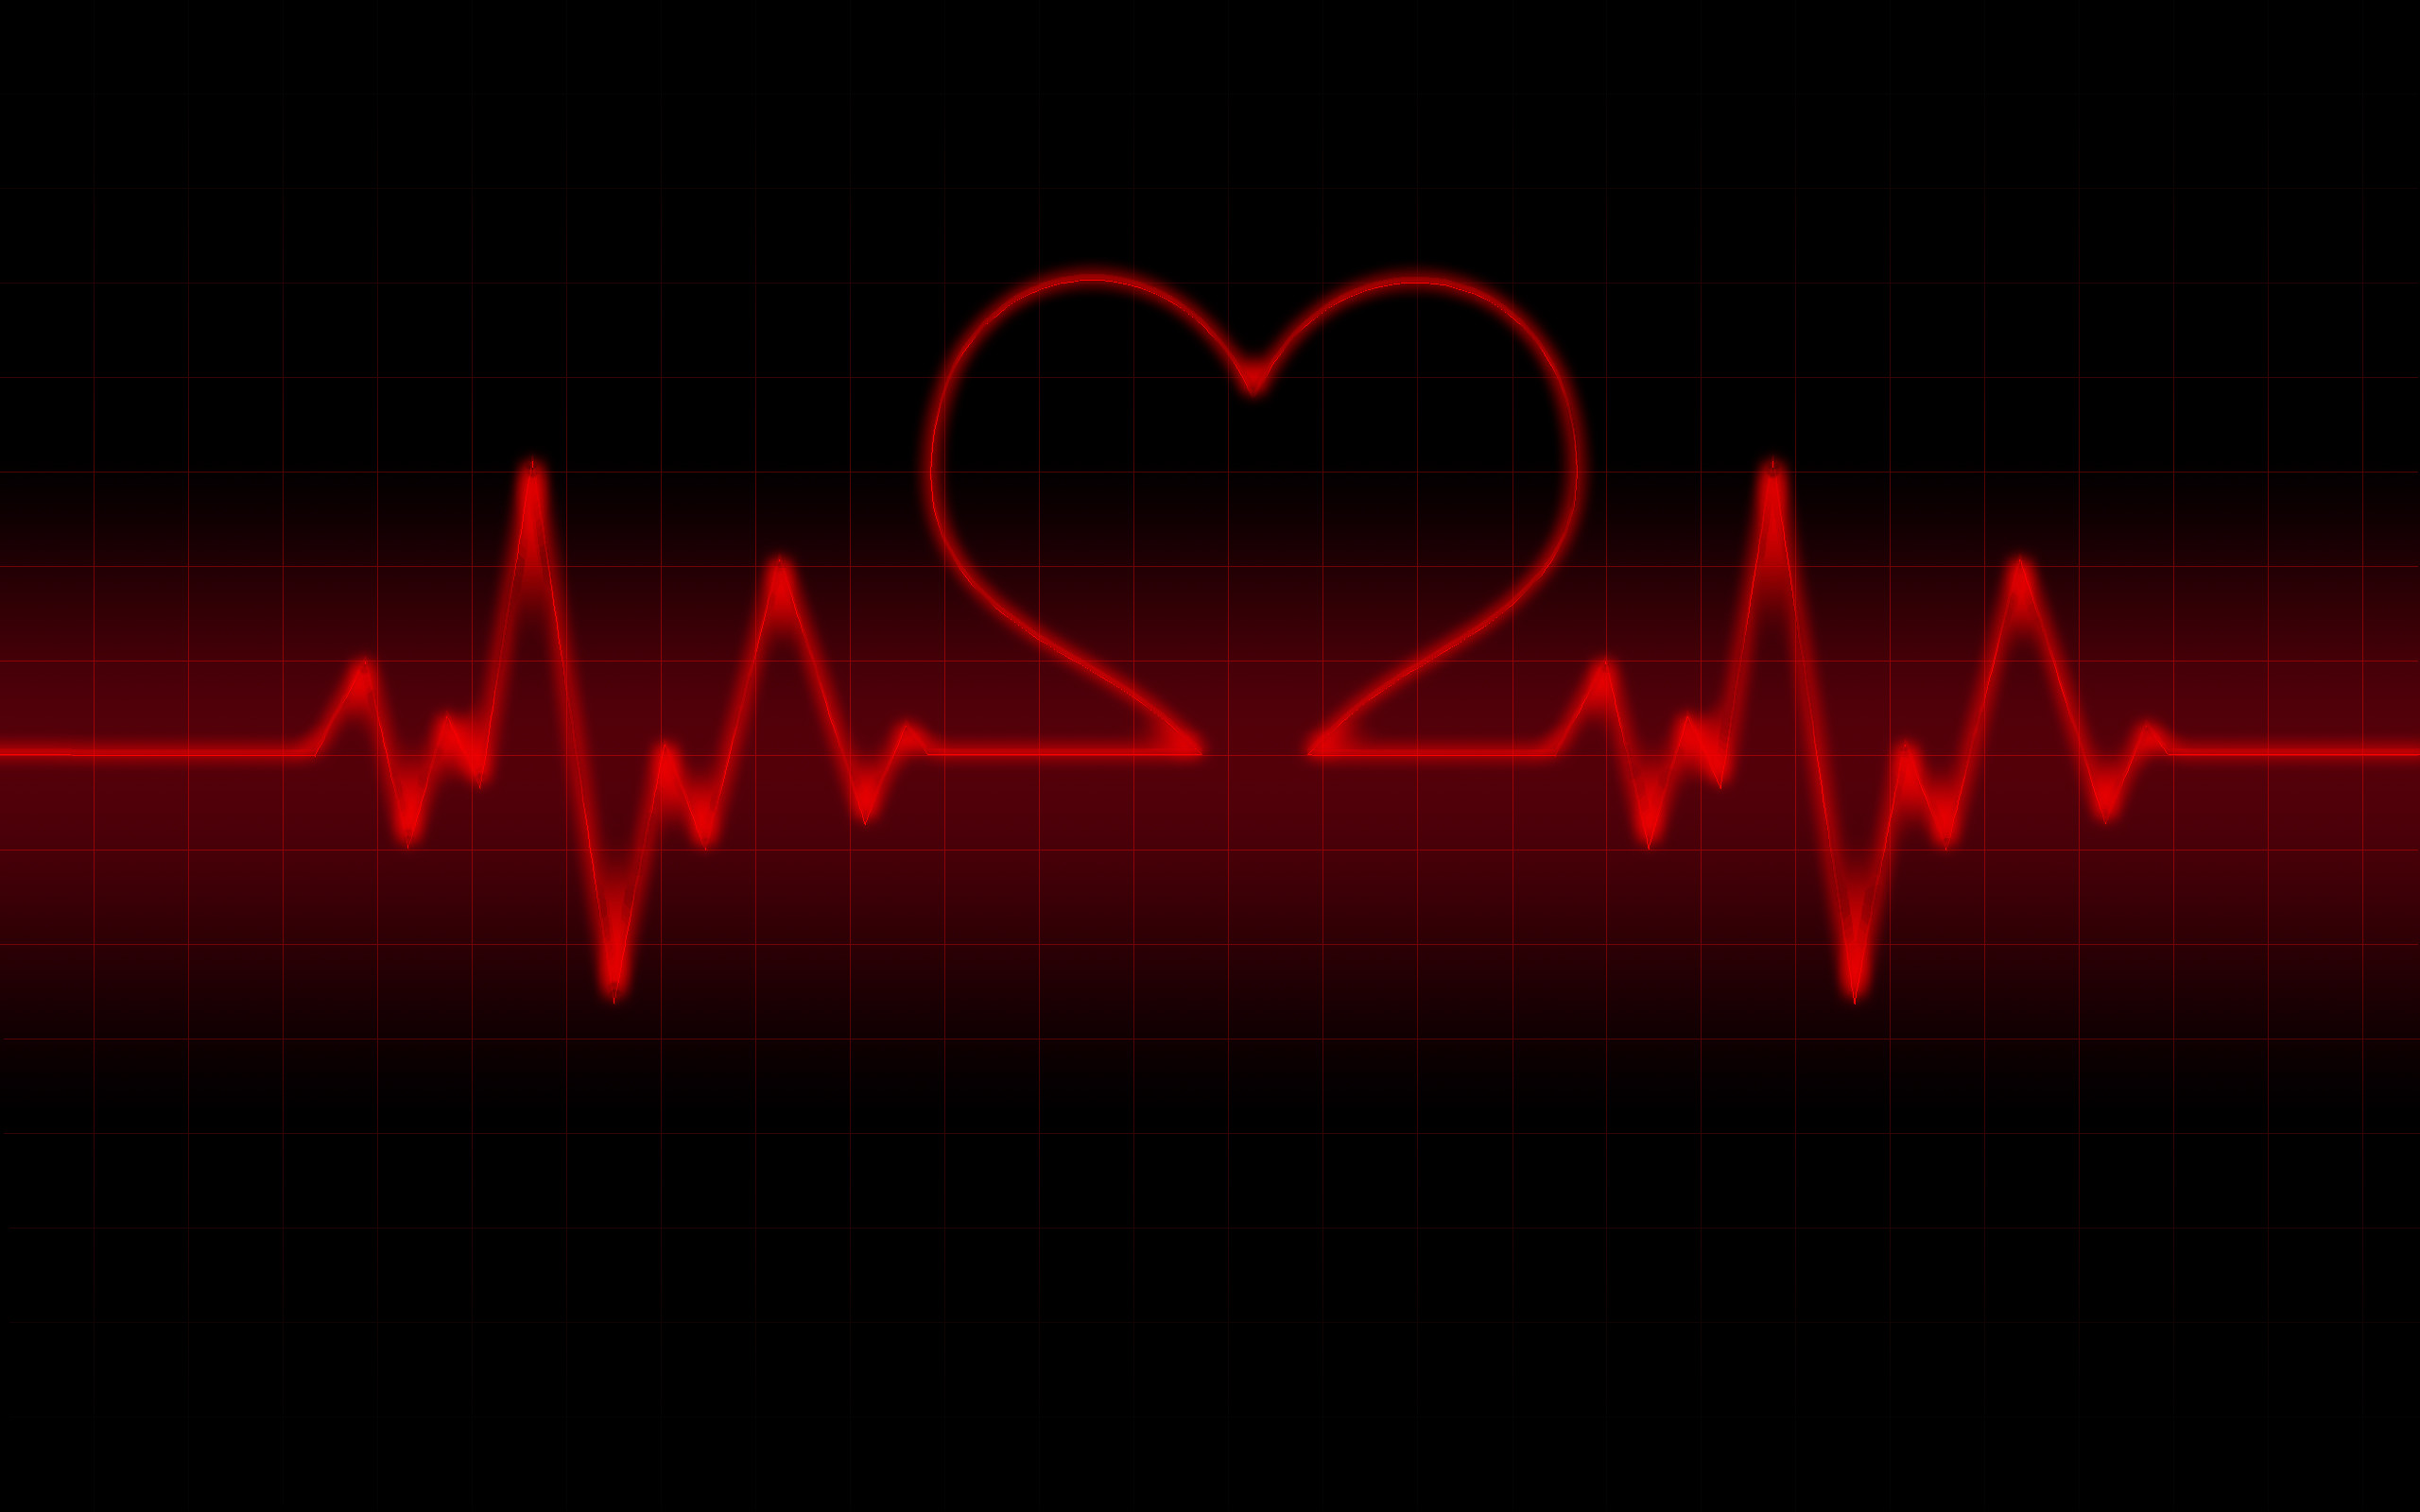 life line heart rate Wallpaper Valentine Day Red And Black Wallpapers